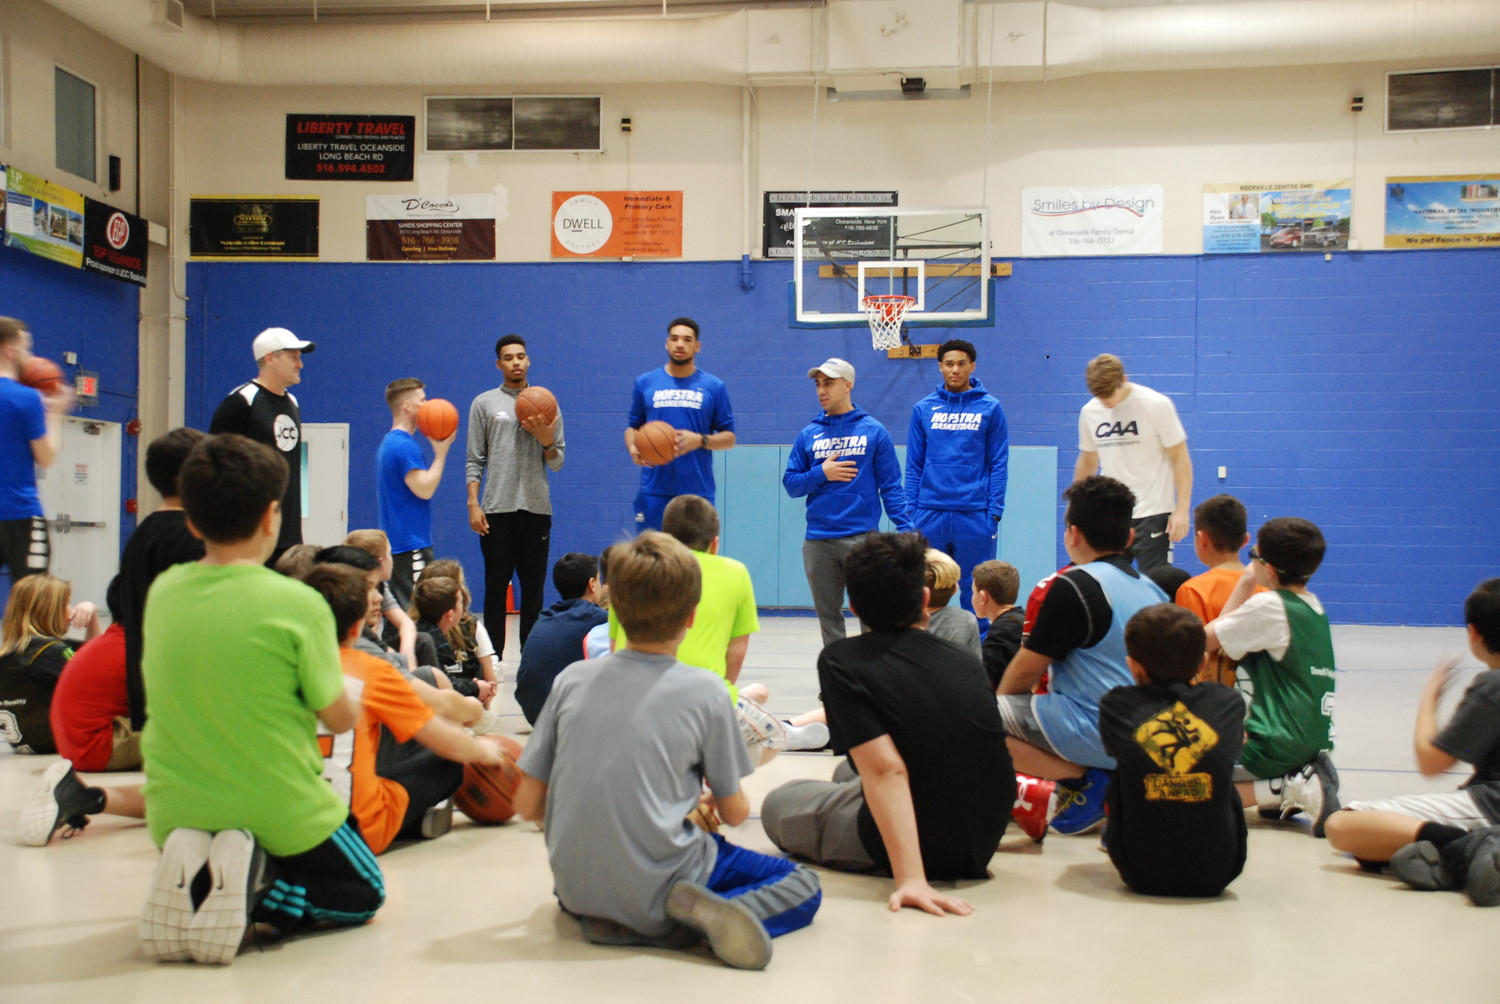 The Hofstra team introduced themselves to their young students, and spoke about the importance of hard work and practice.